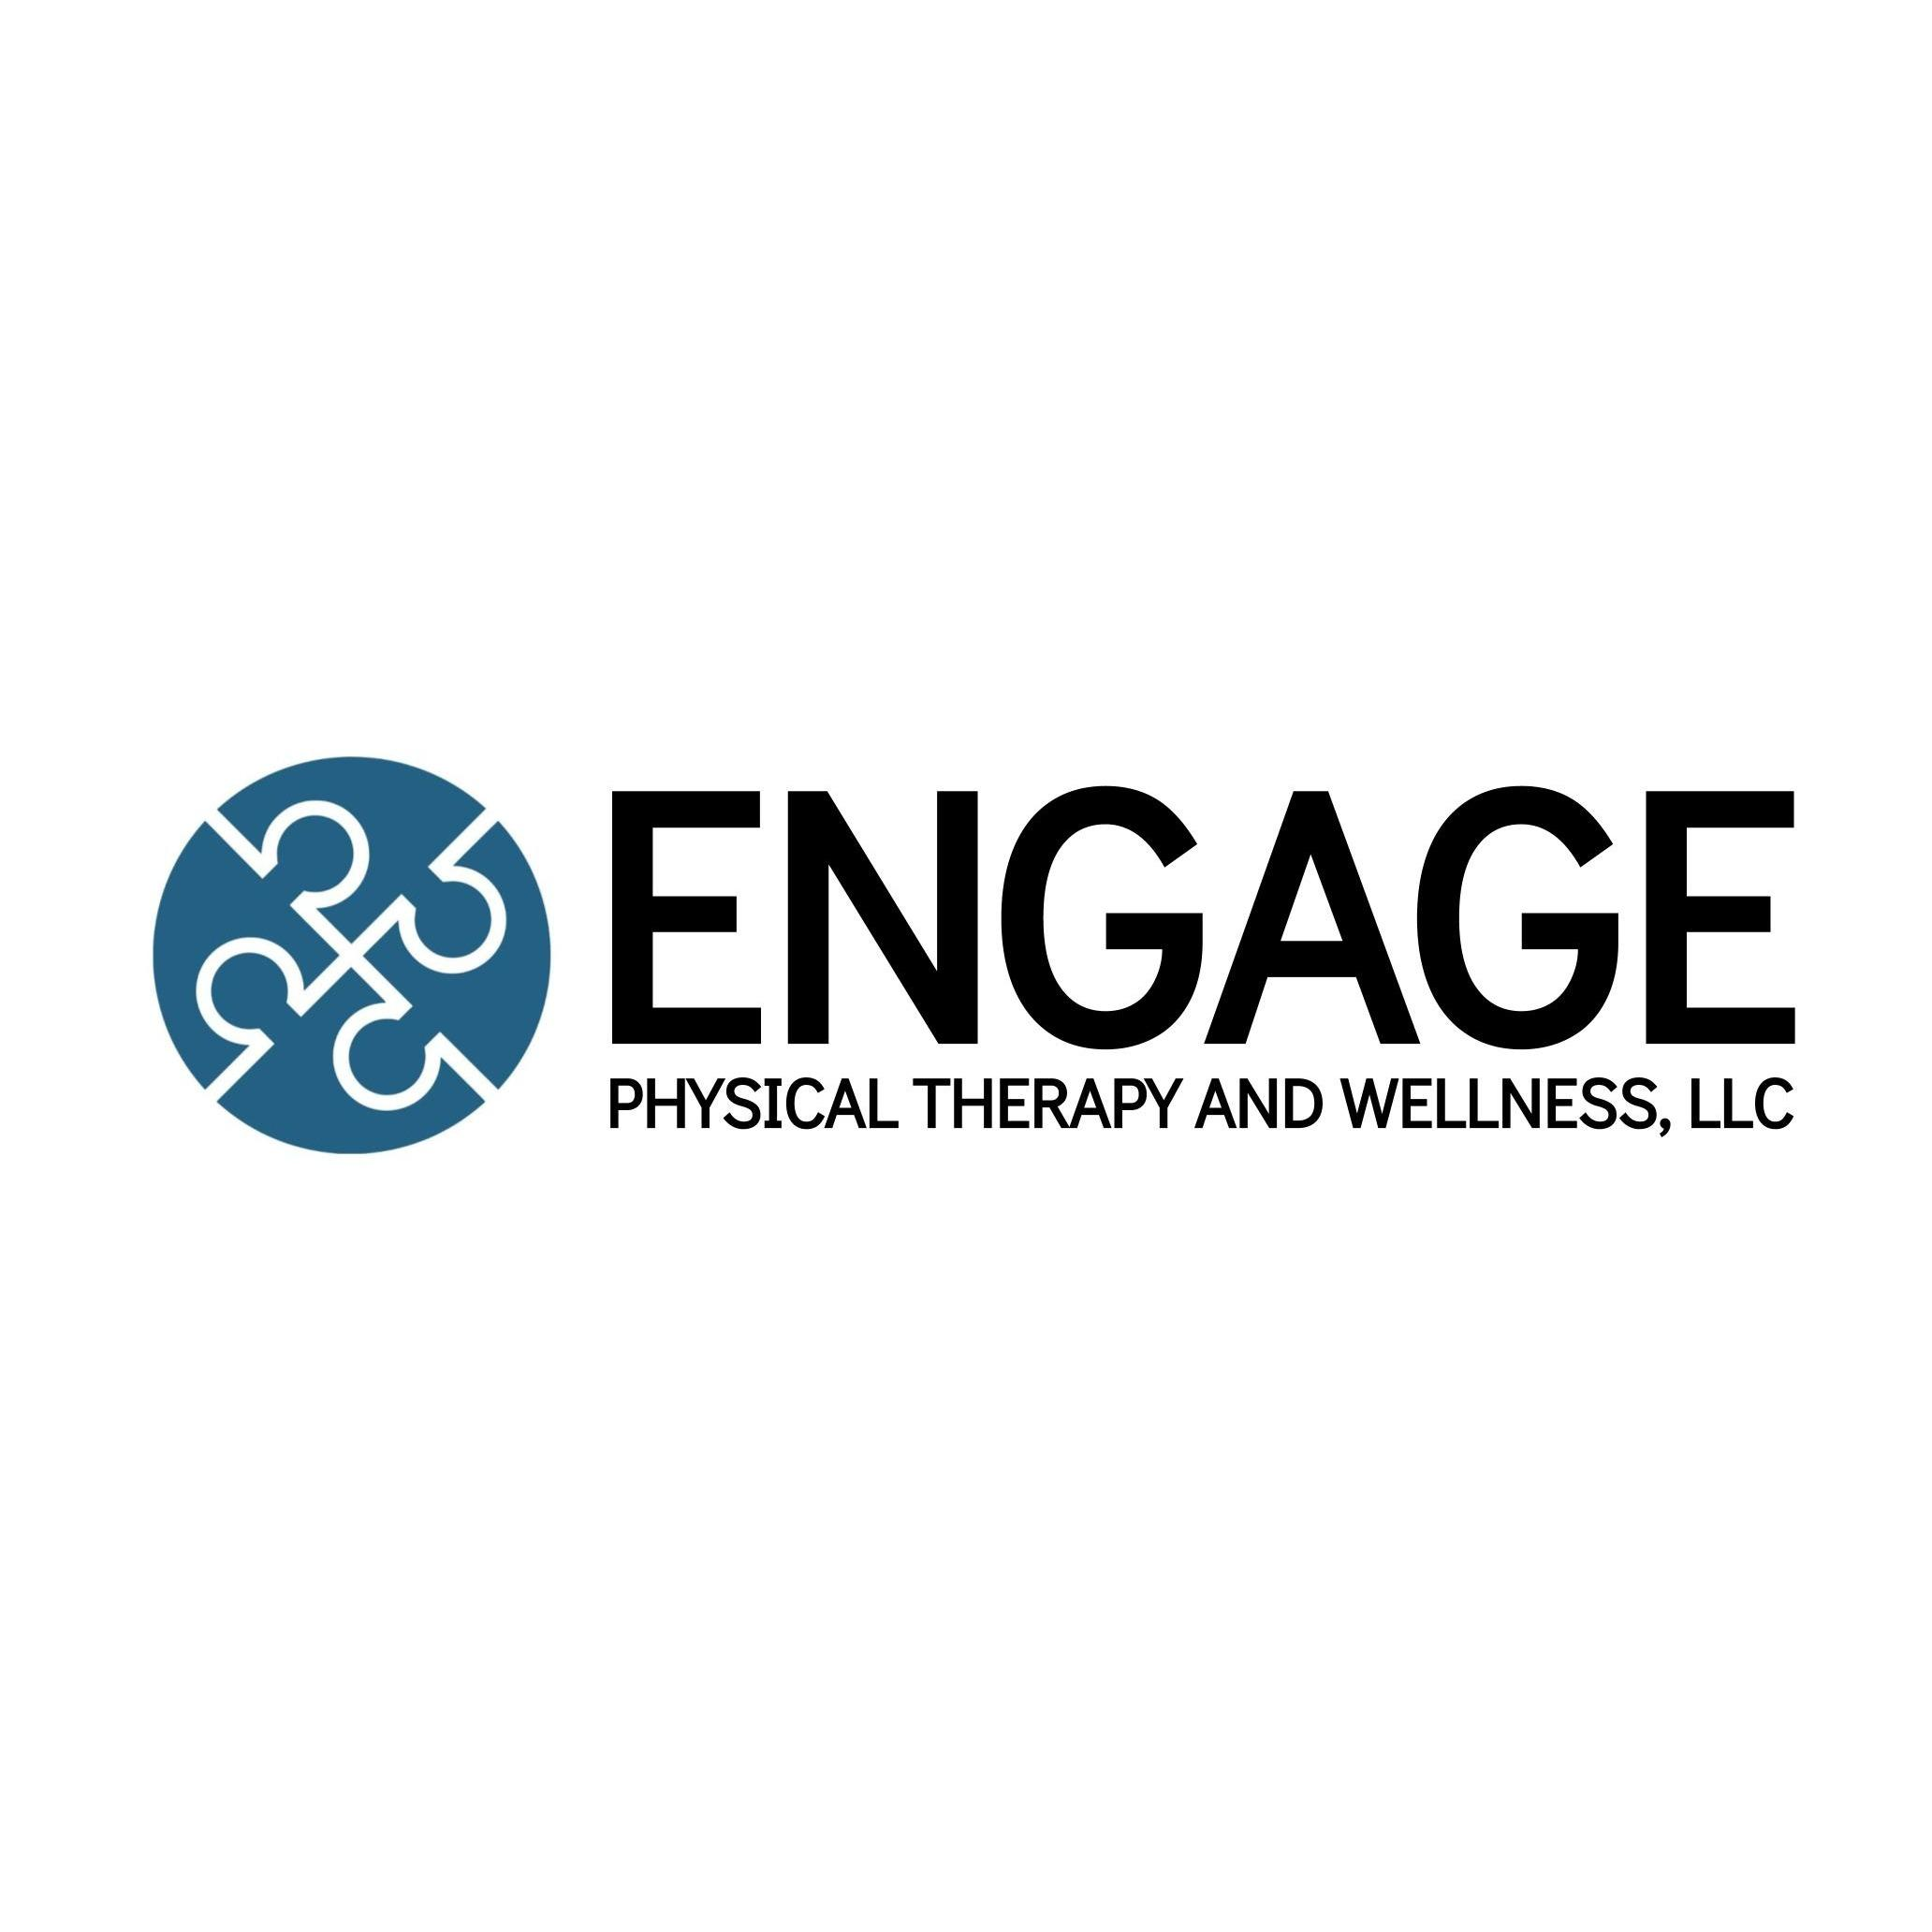 Engage Physical Therapy and Wellness